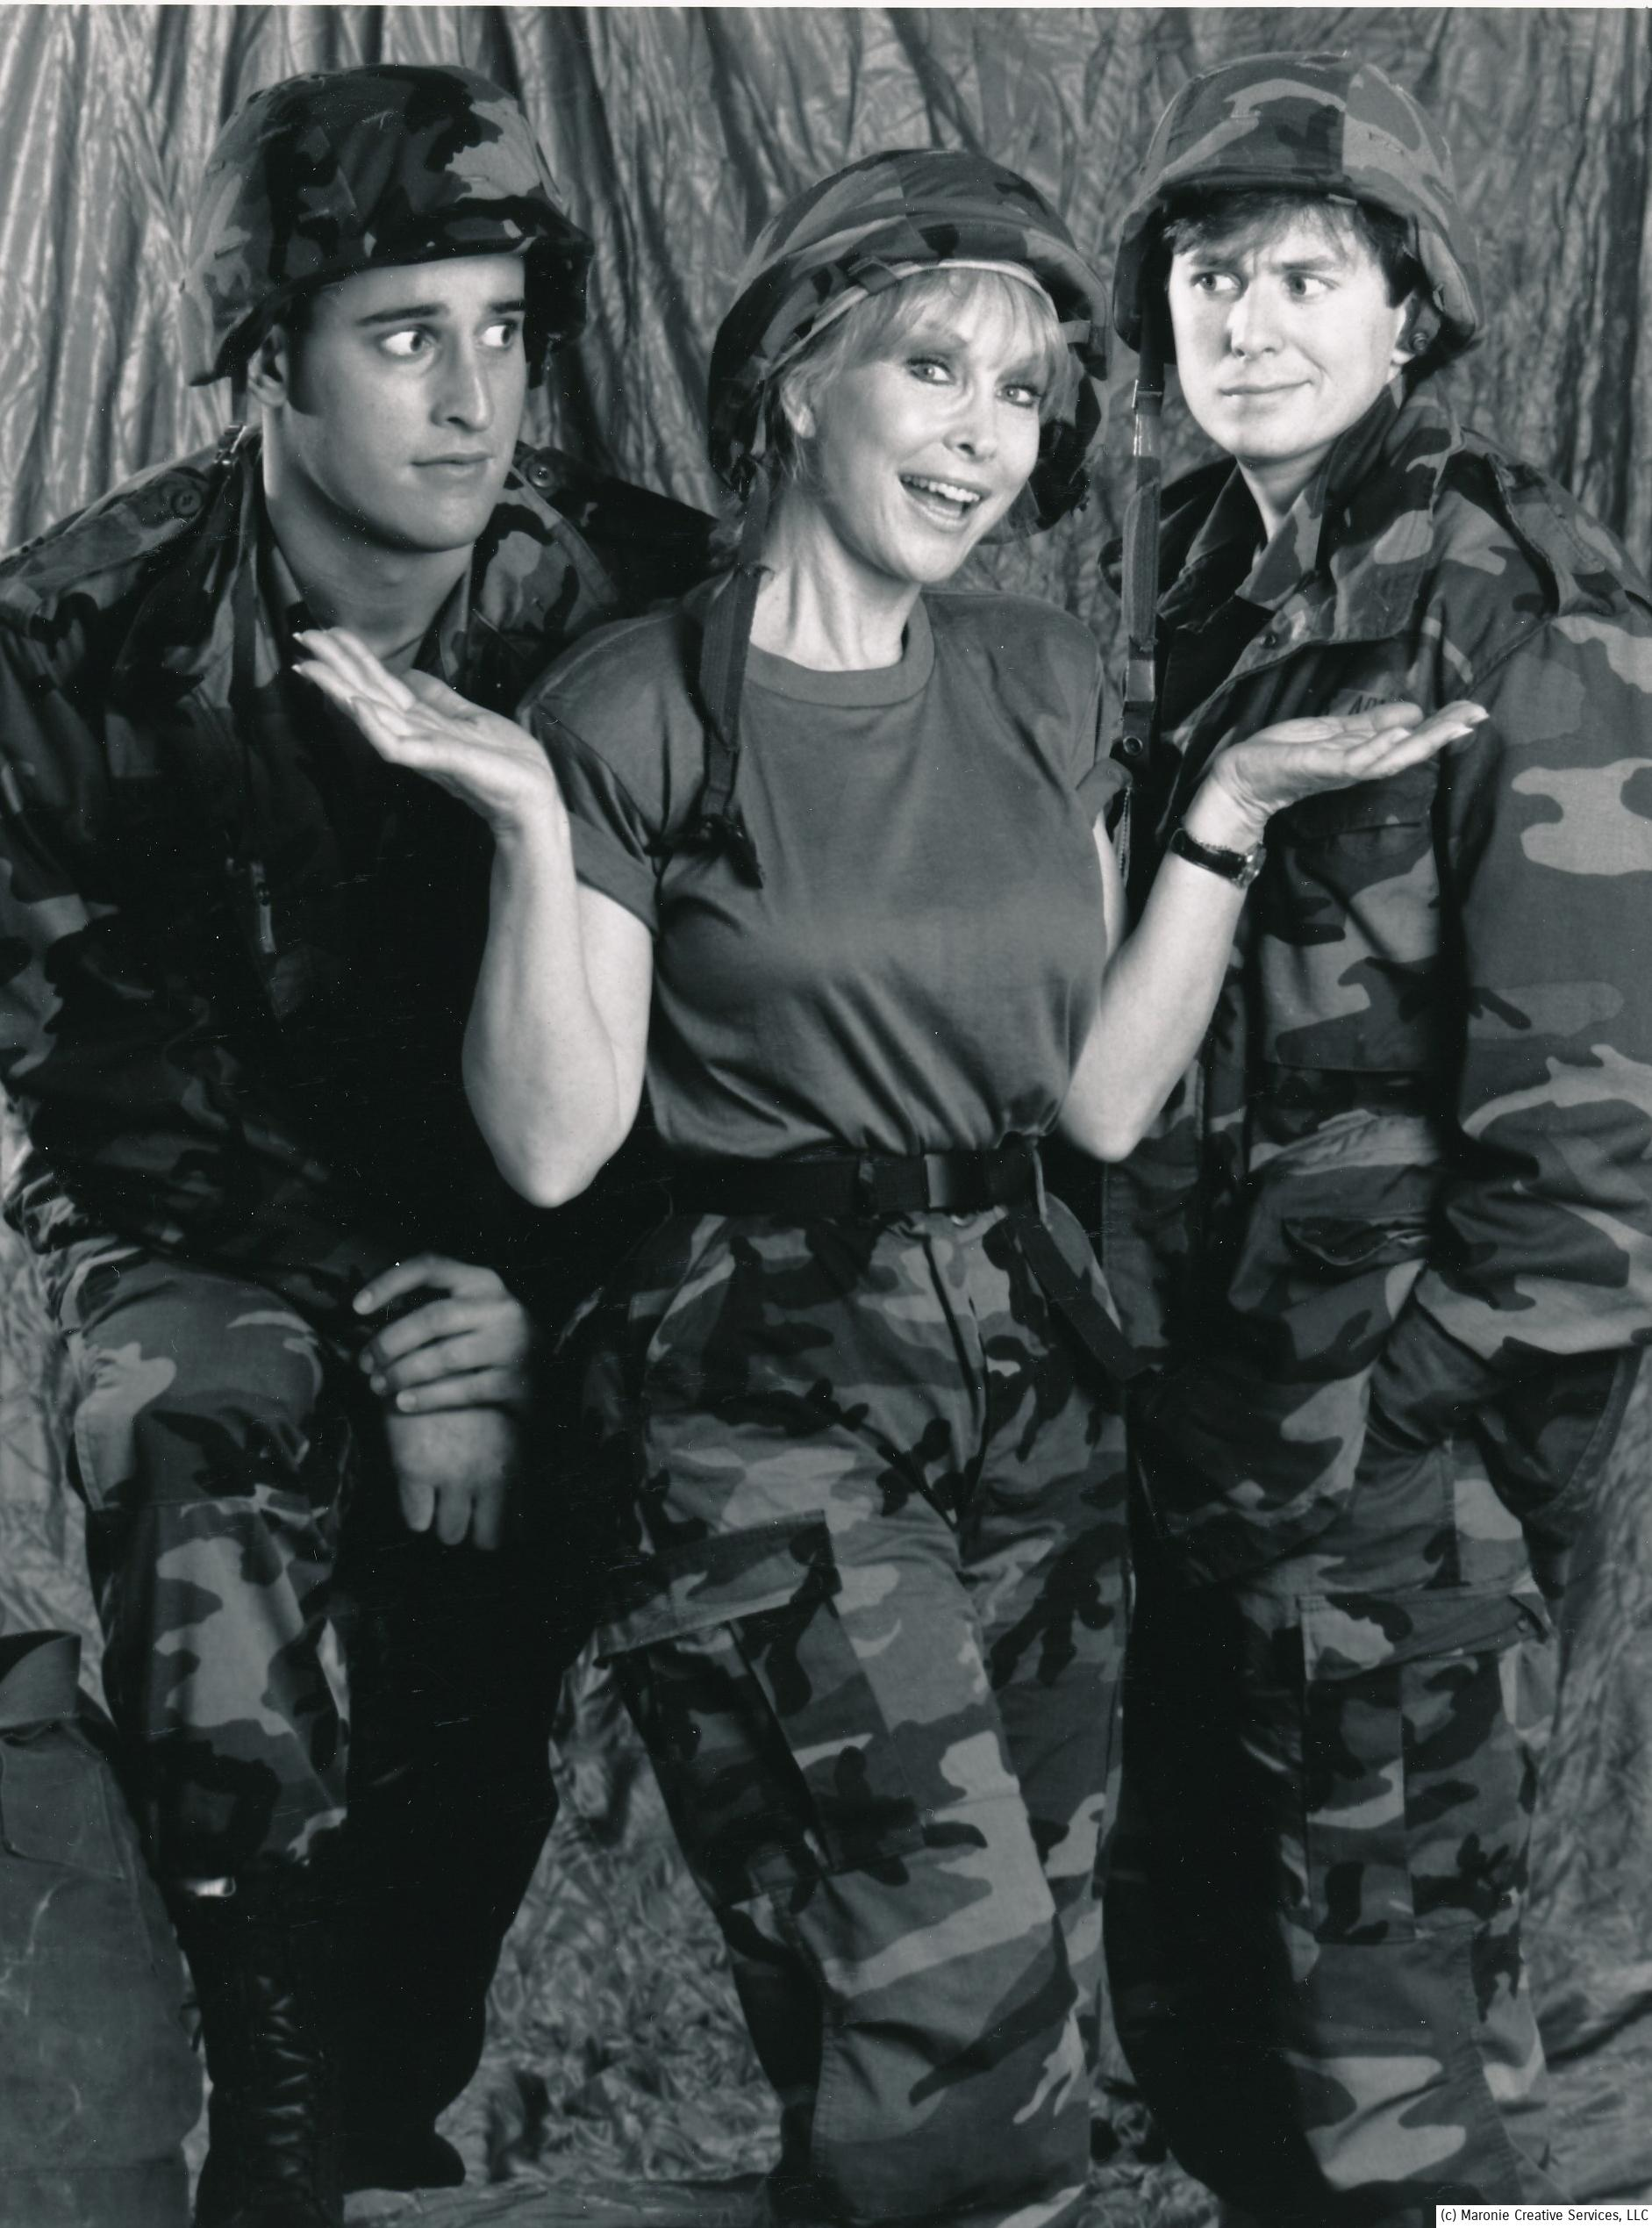 After Jeannie folded, Eden became the Queen of the made-for-TV movie. Your Mother Wears Army Boots was yet another of the assembly-line films she made for the tube. This one is notable as it co-starred her real-life son, Matthew Ansara (l). In 2001 Ansara was found dead in his parked car, the victim of an accidental heroin overdose. (c) NBC a